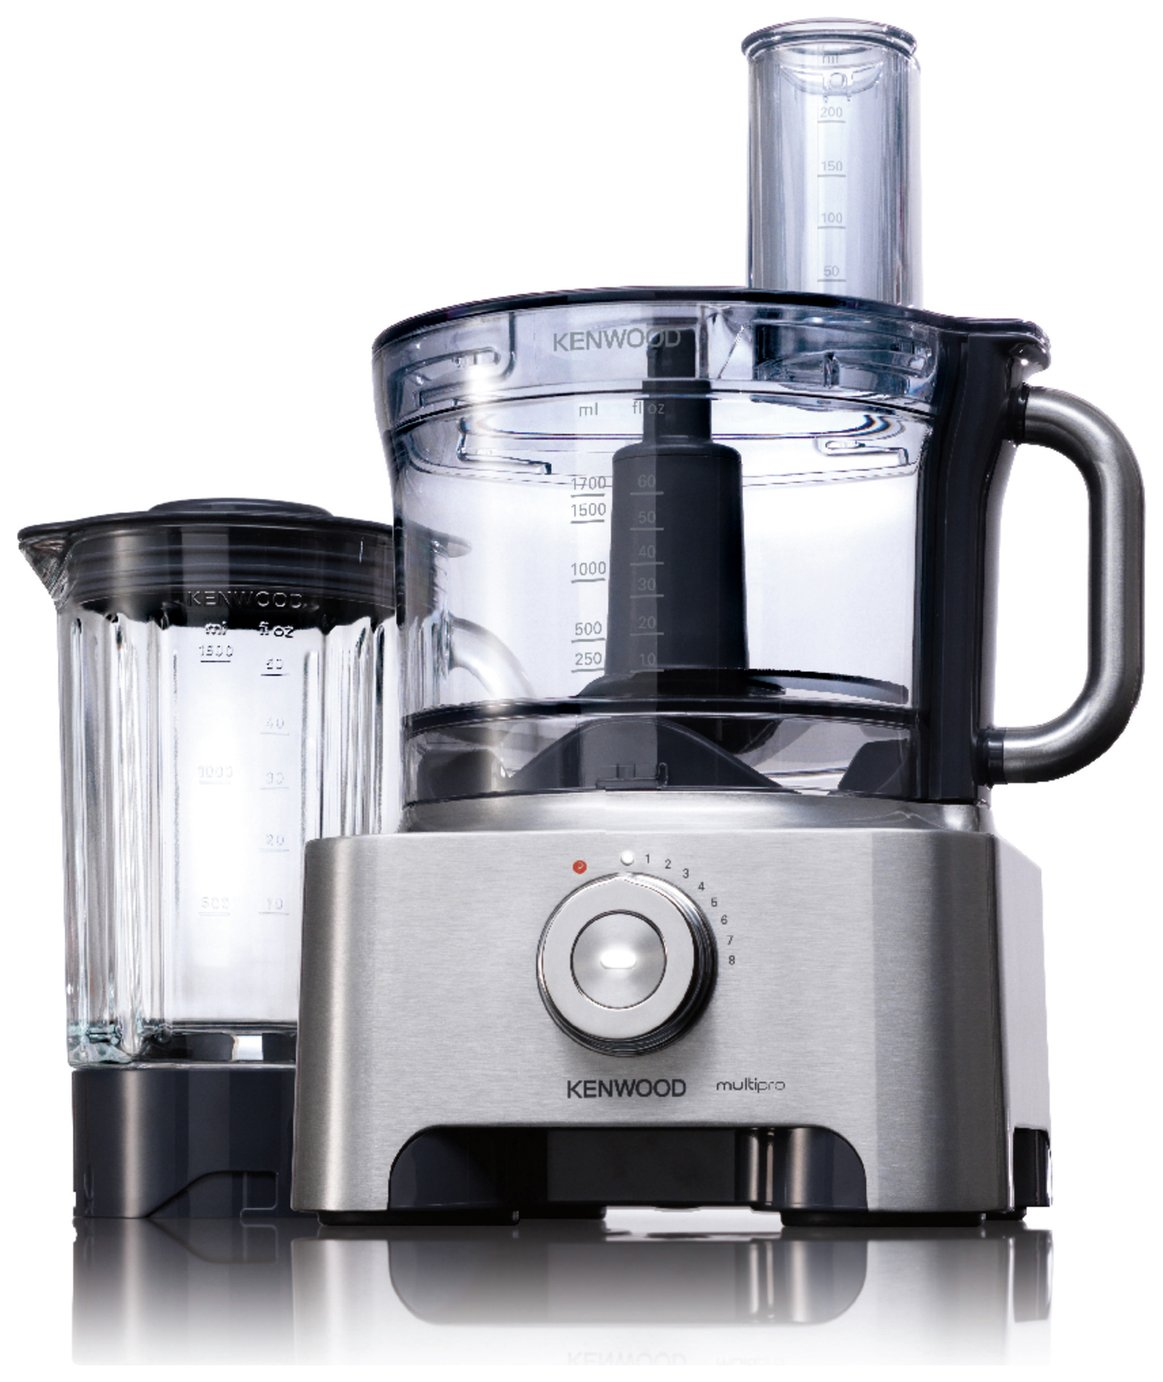 Kenwood - FPM810 Multipro Sense Food Processor